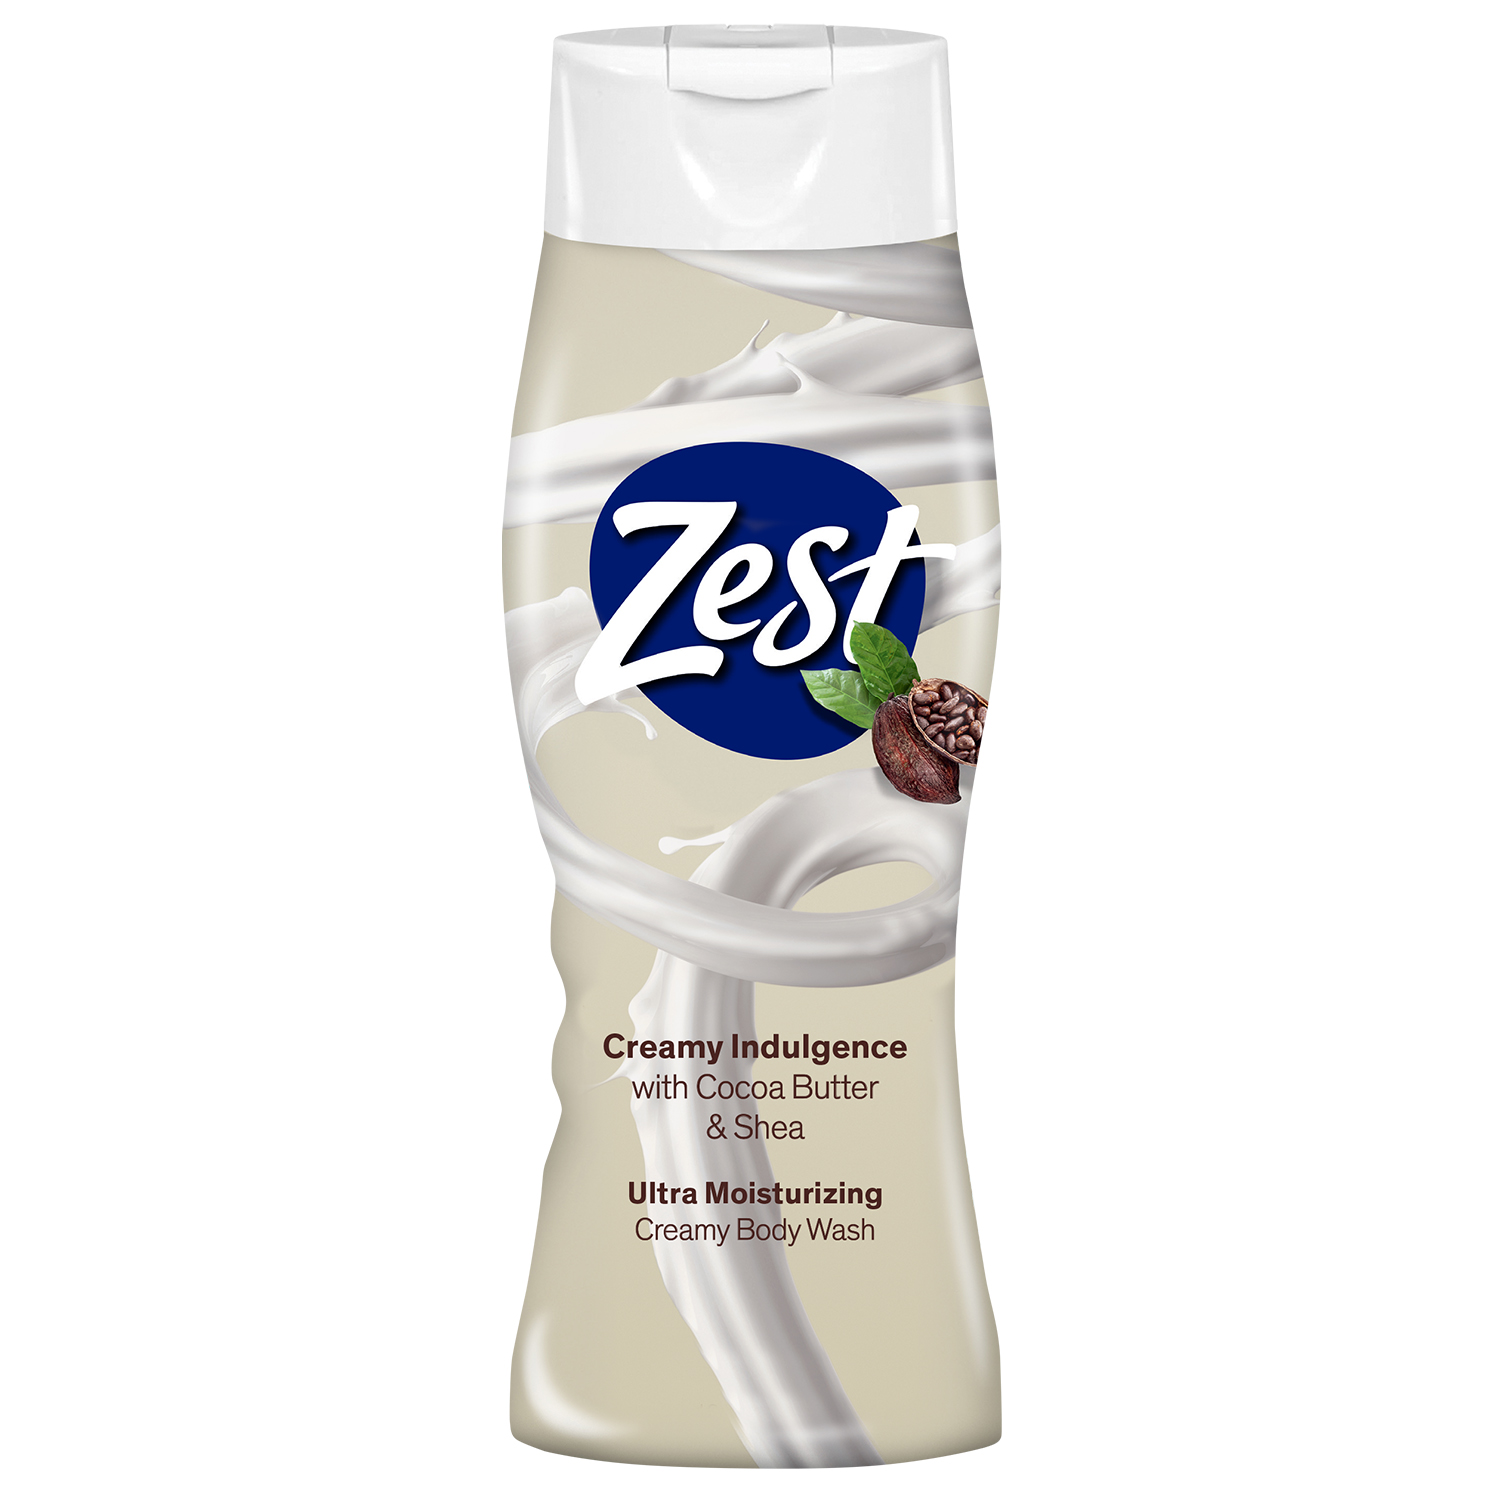 Zest Cocoa Butter Body Wash